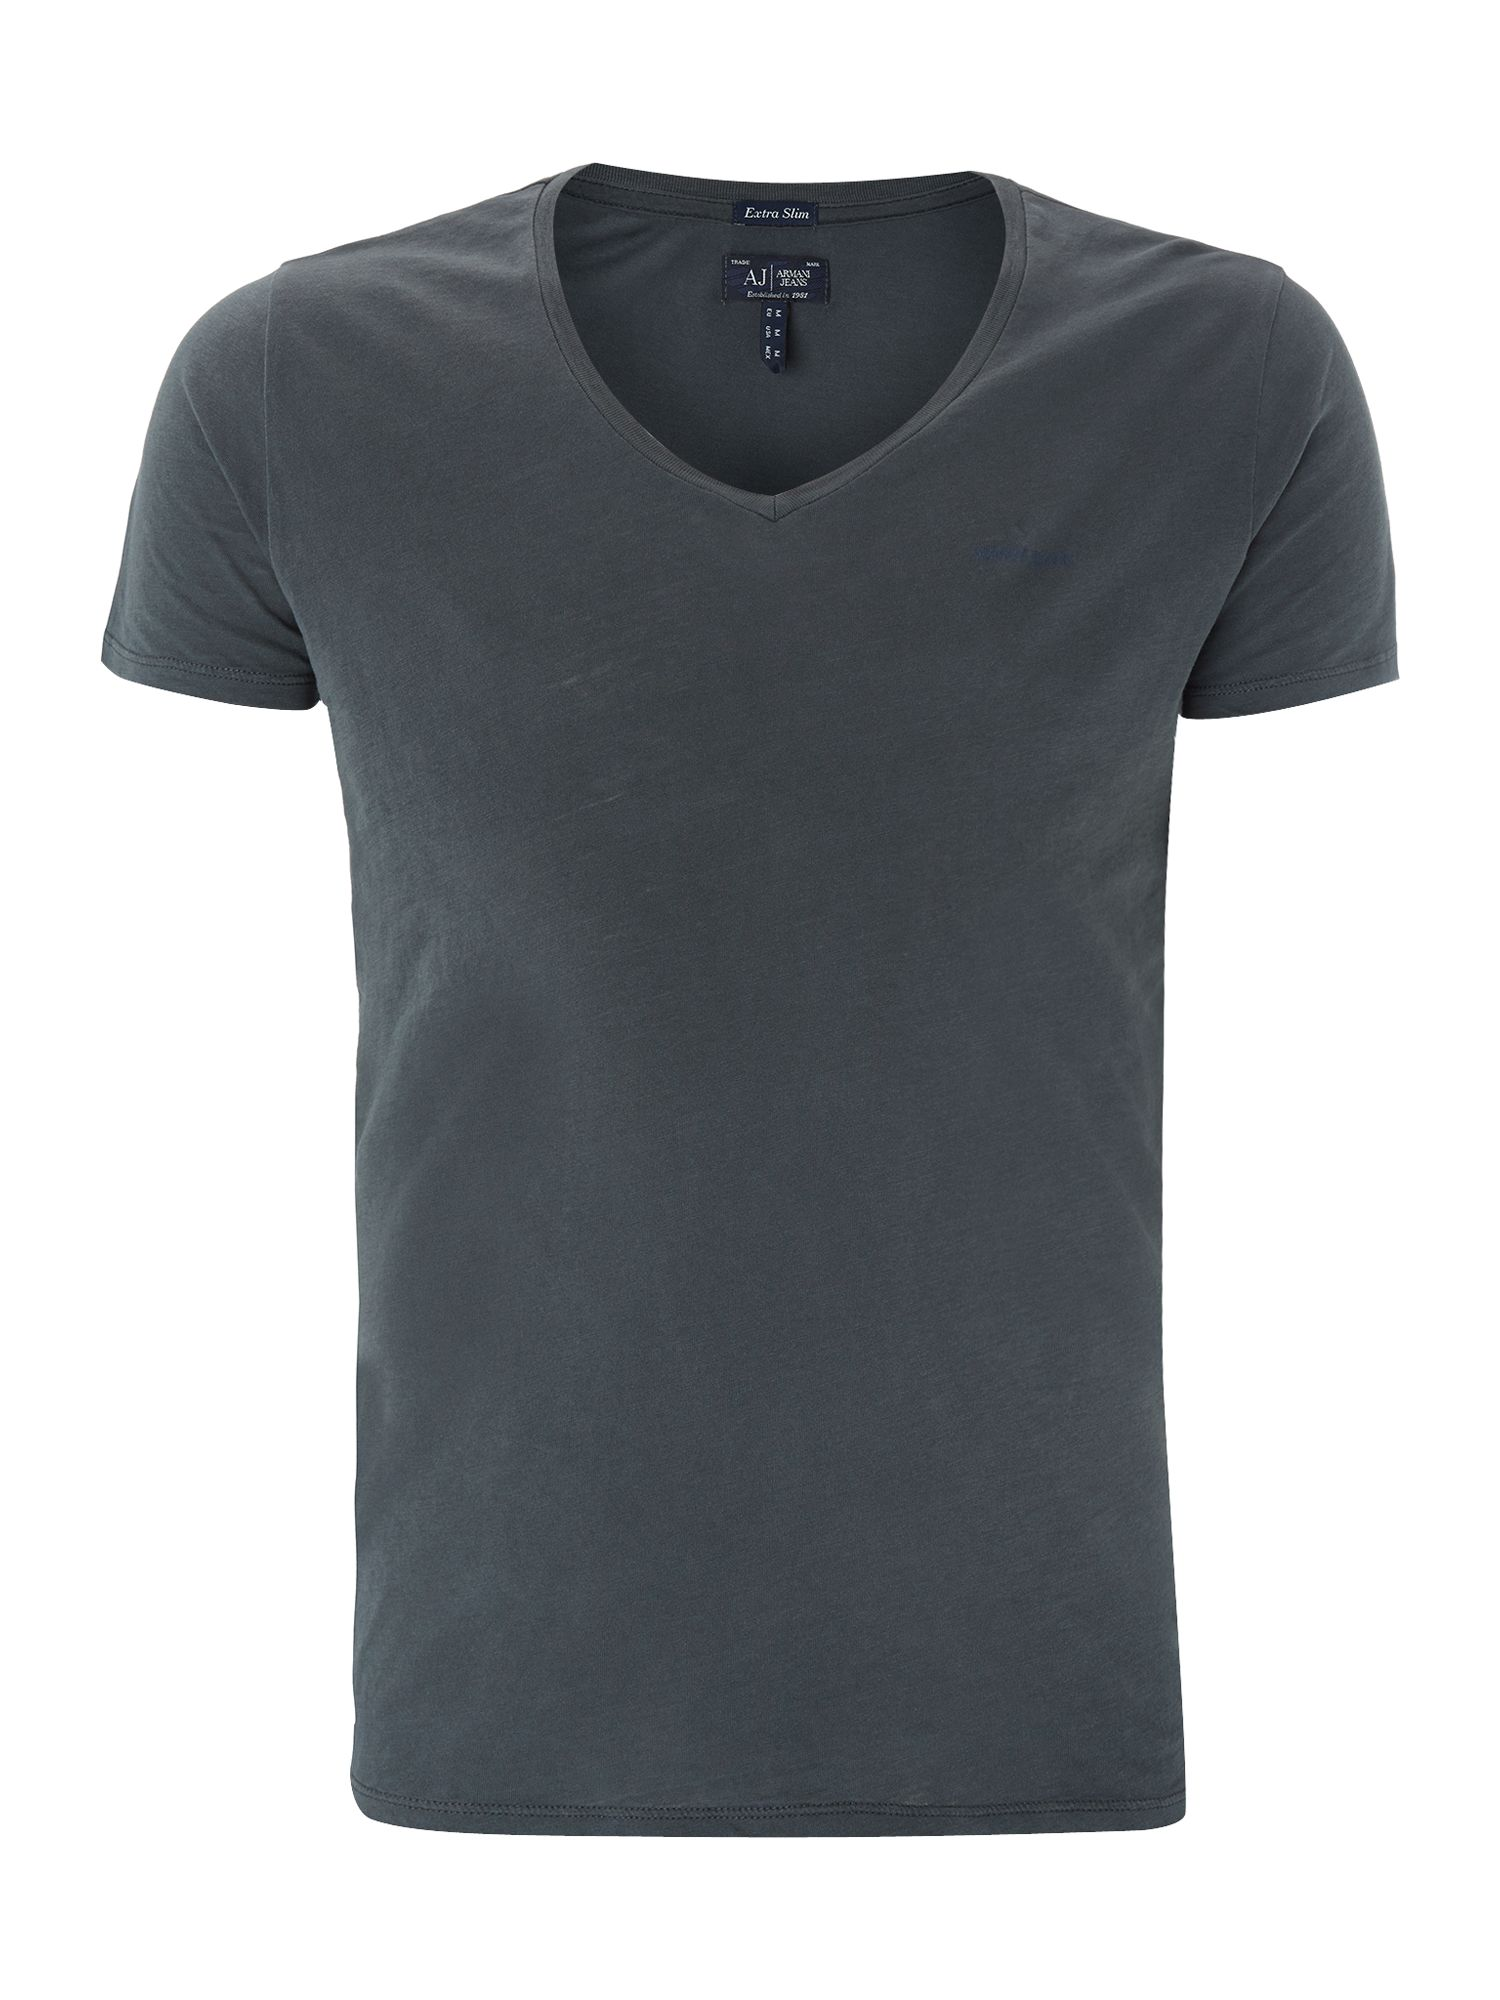 V neck logo t-shirt